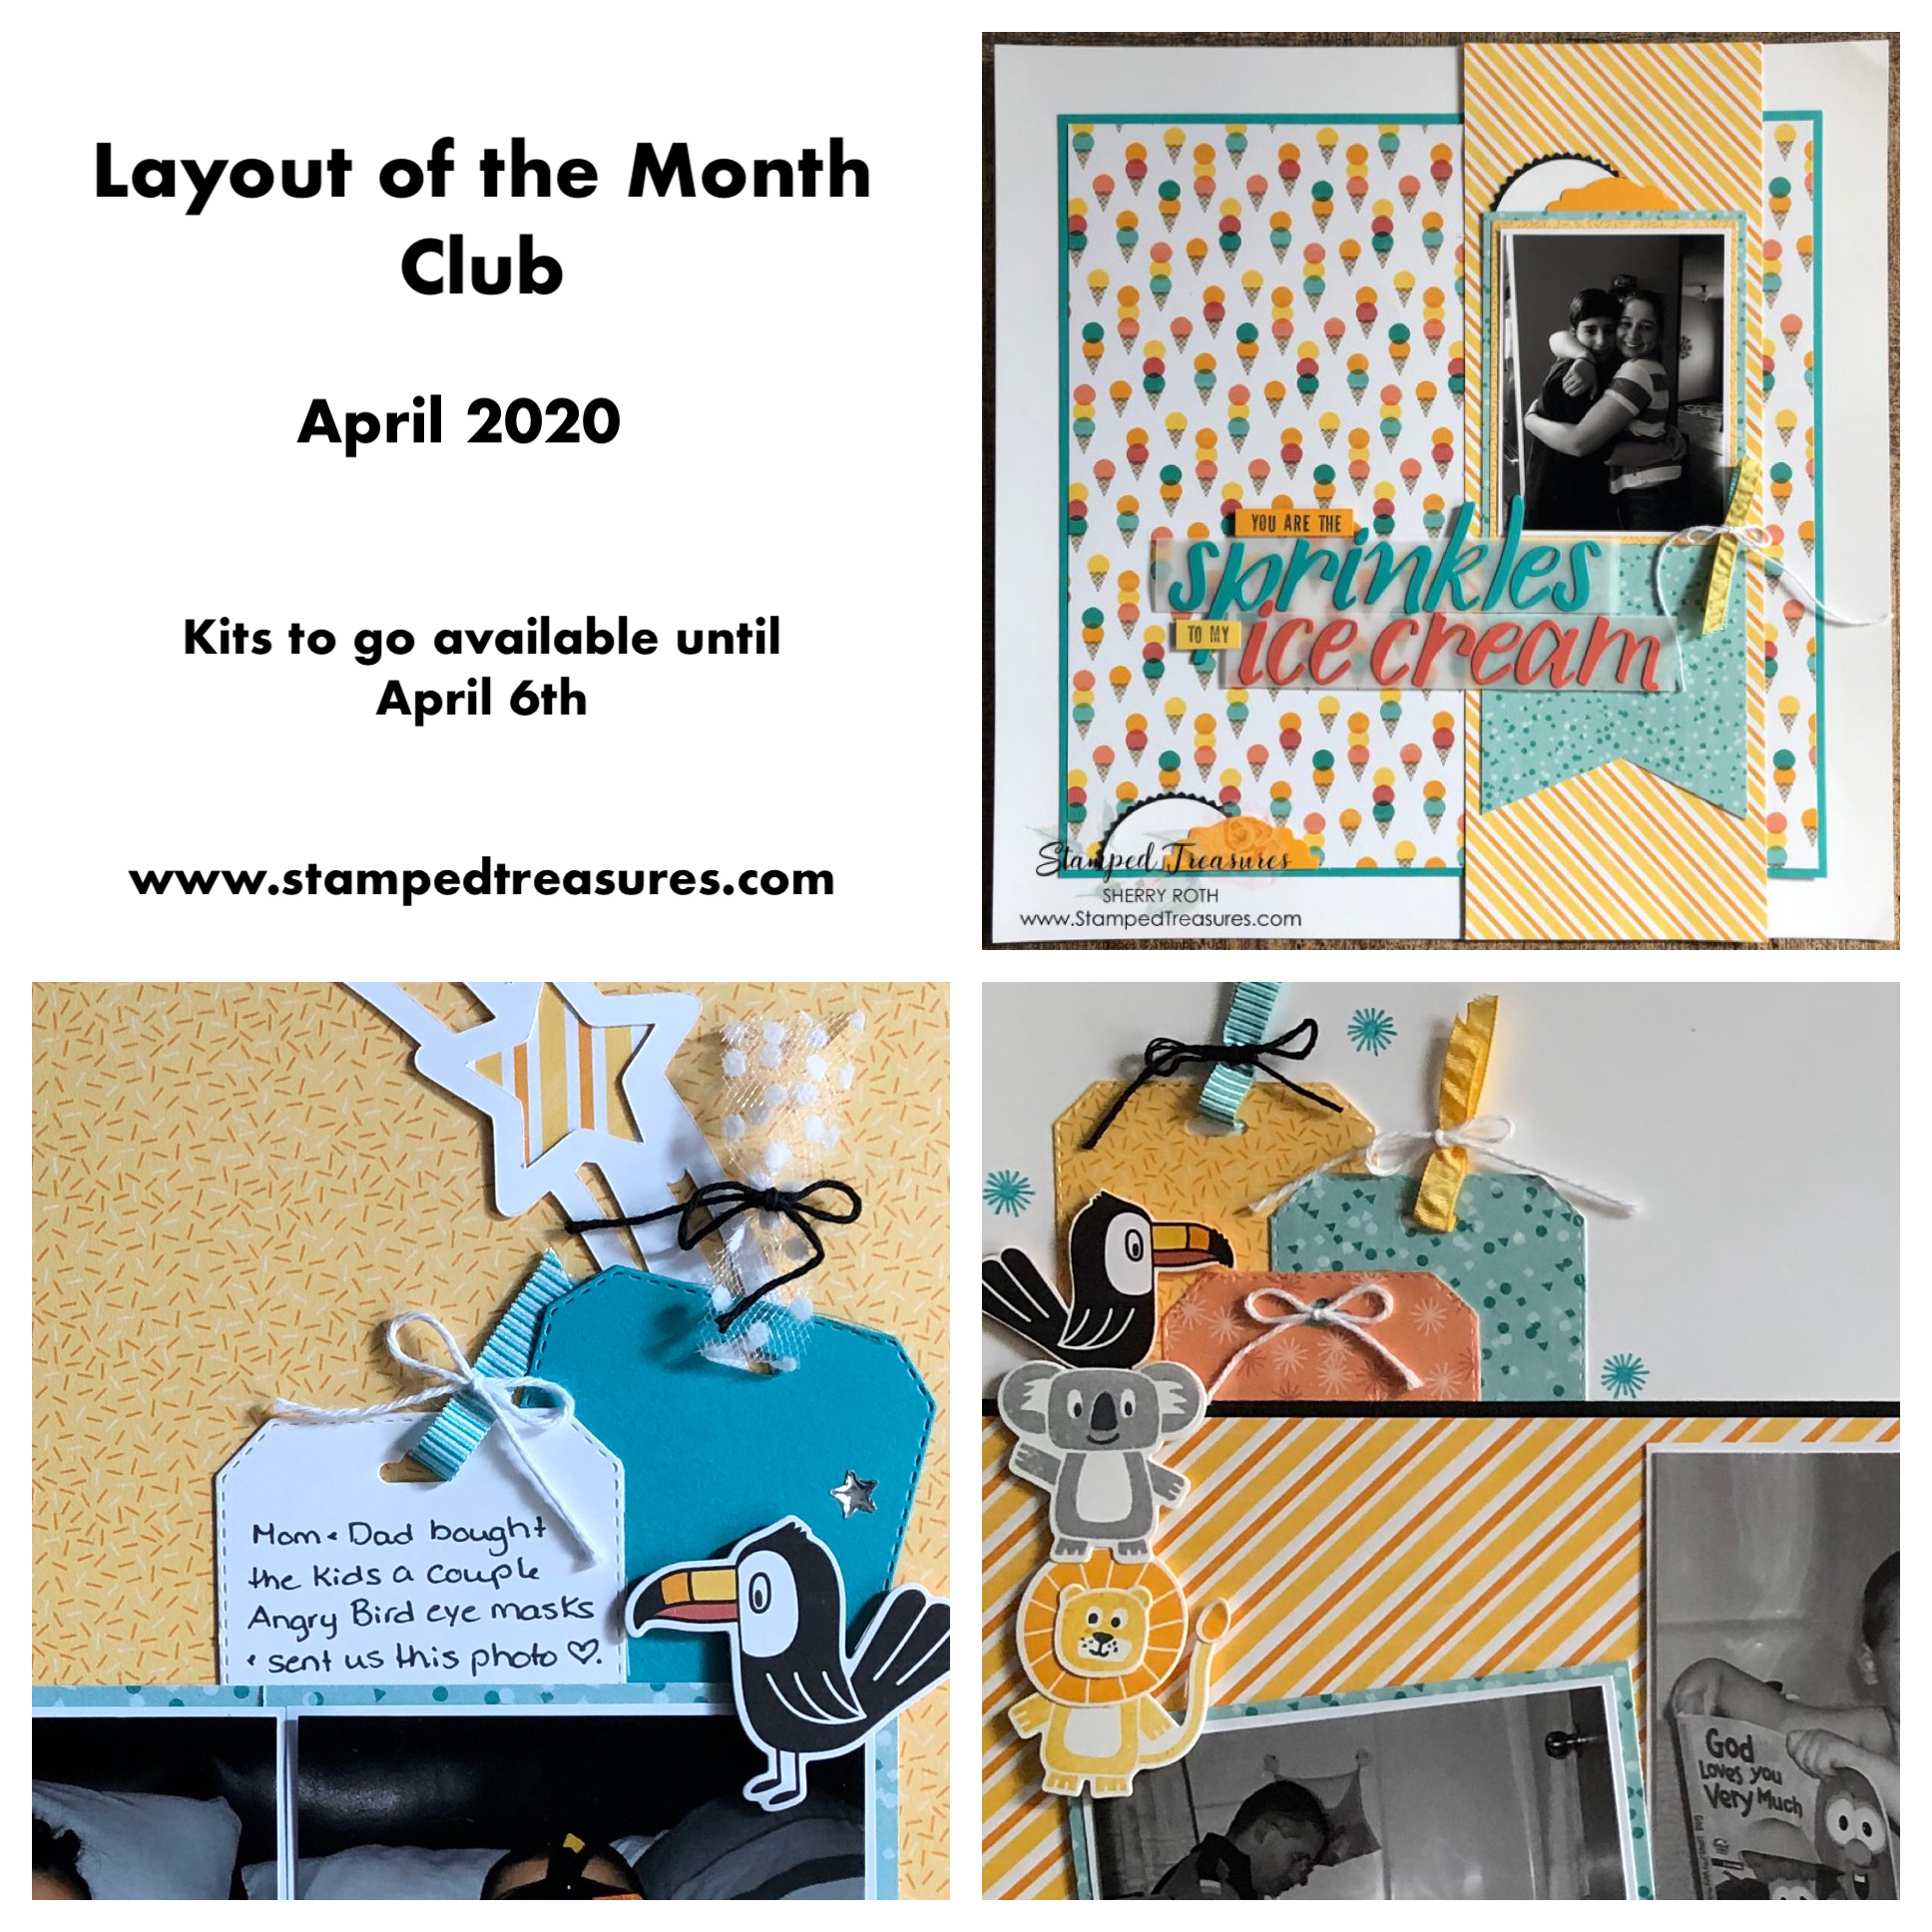 Birthday Bonanza Layout of the Month